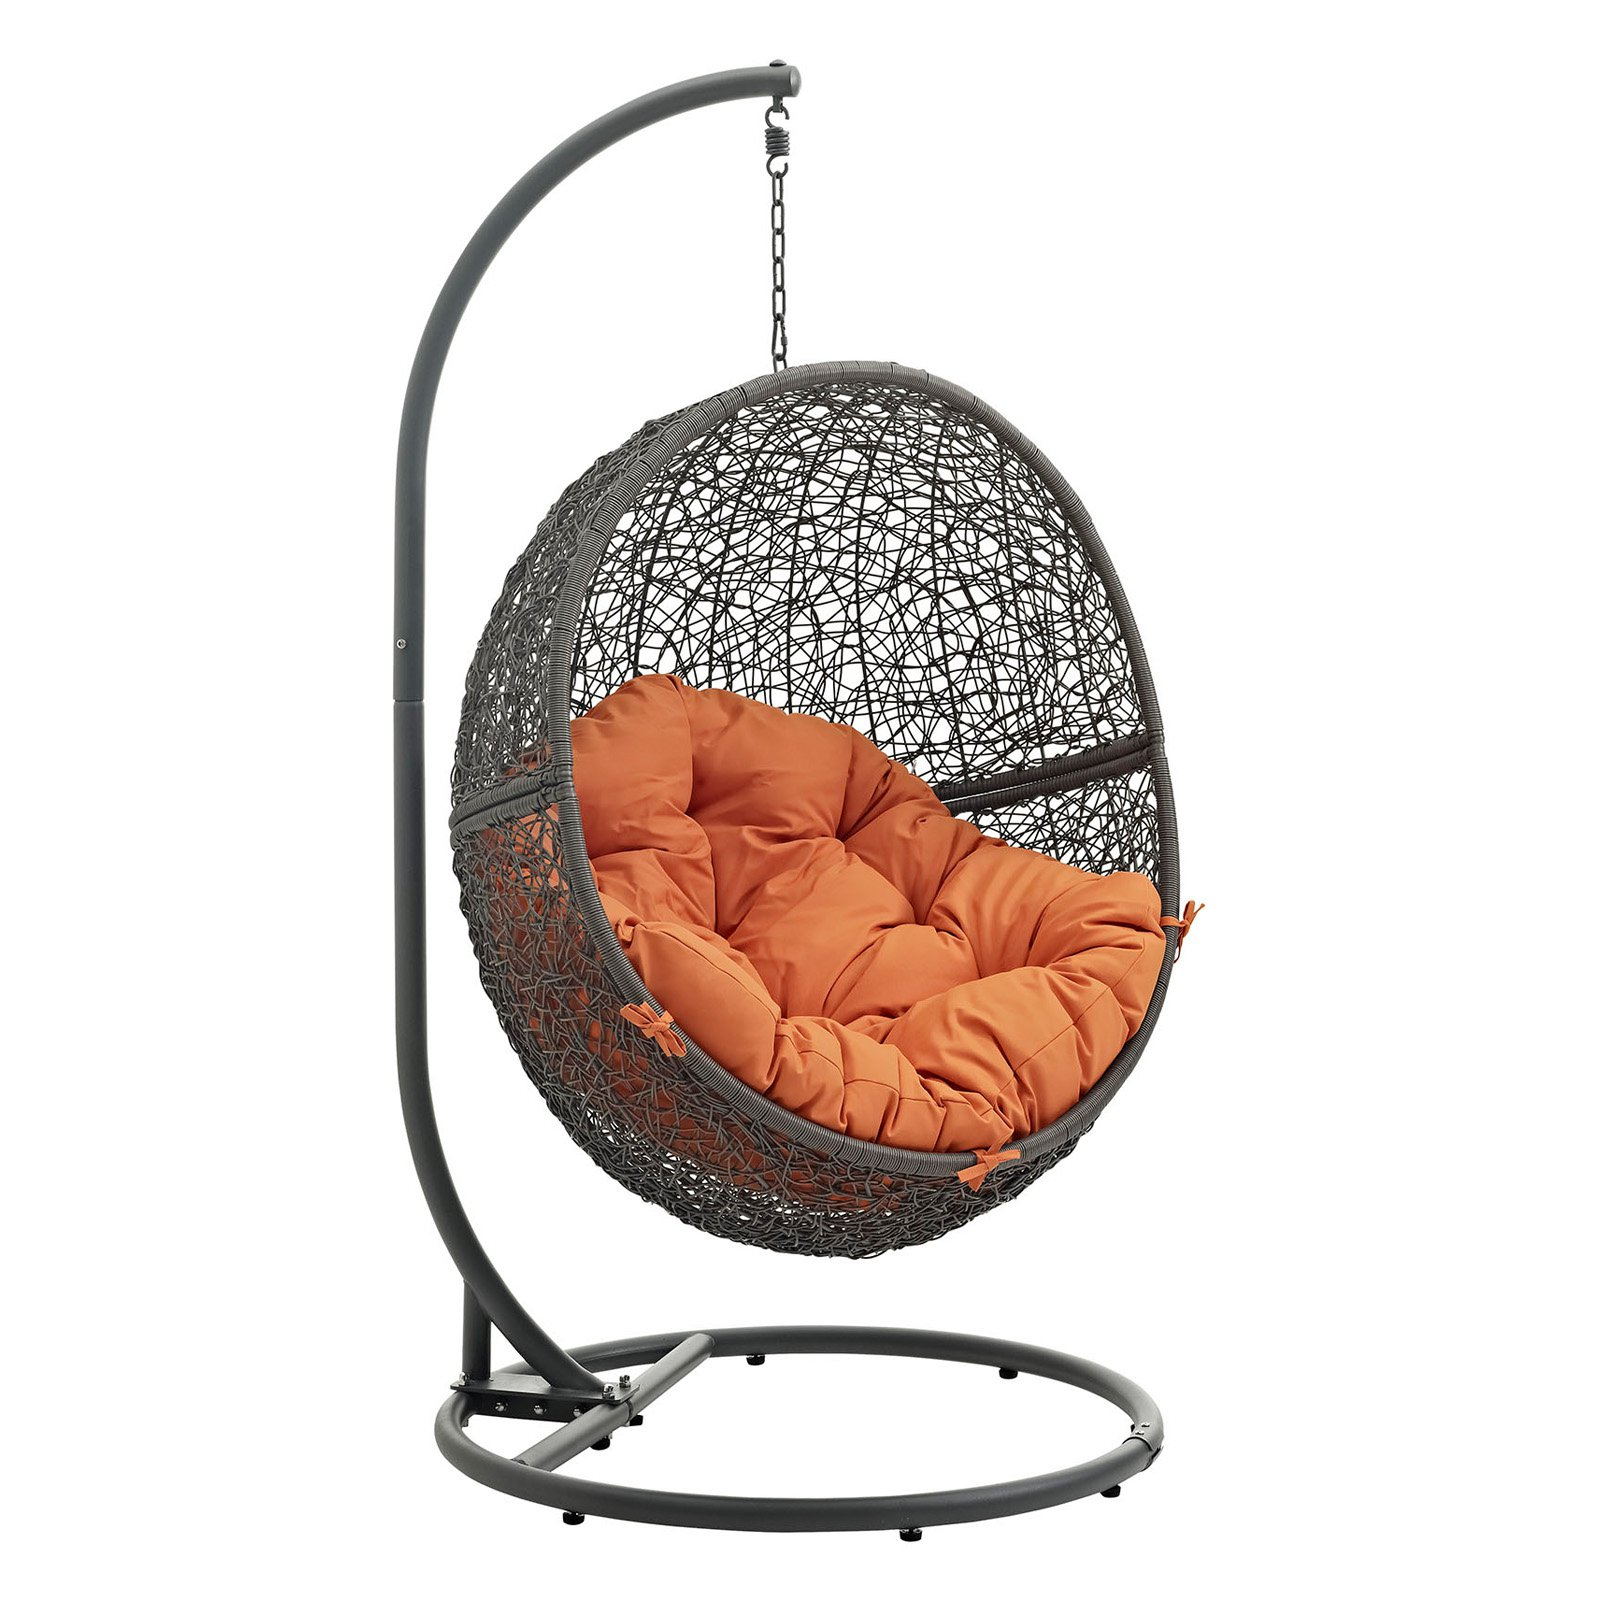 Modway Hide Outdoor Patio Swing Chair, Multiple Colors Available